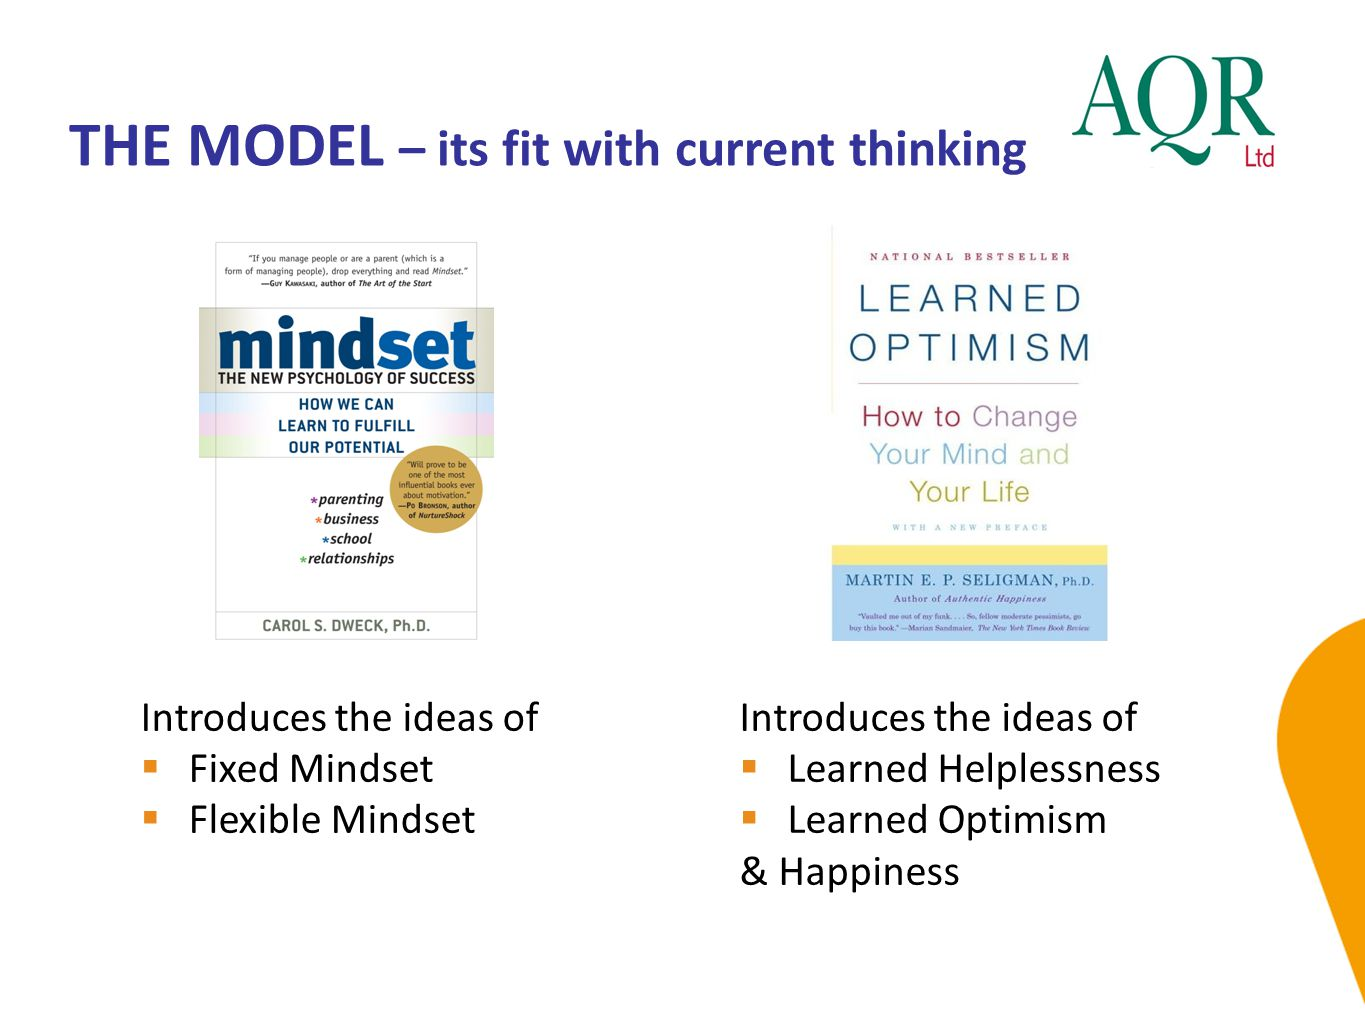 THE MODEL – its fit with current thinking Introduces the ideas of  Fixed Mindset  Flexible Mindset Introduces the ideas of  Learned Helplessness 